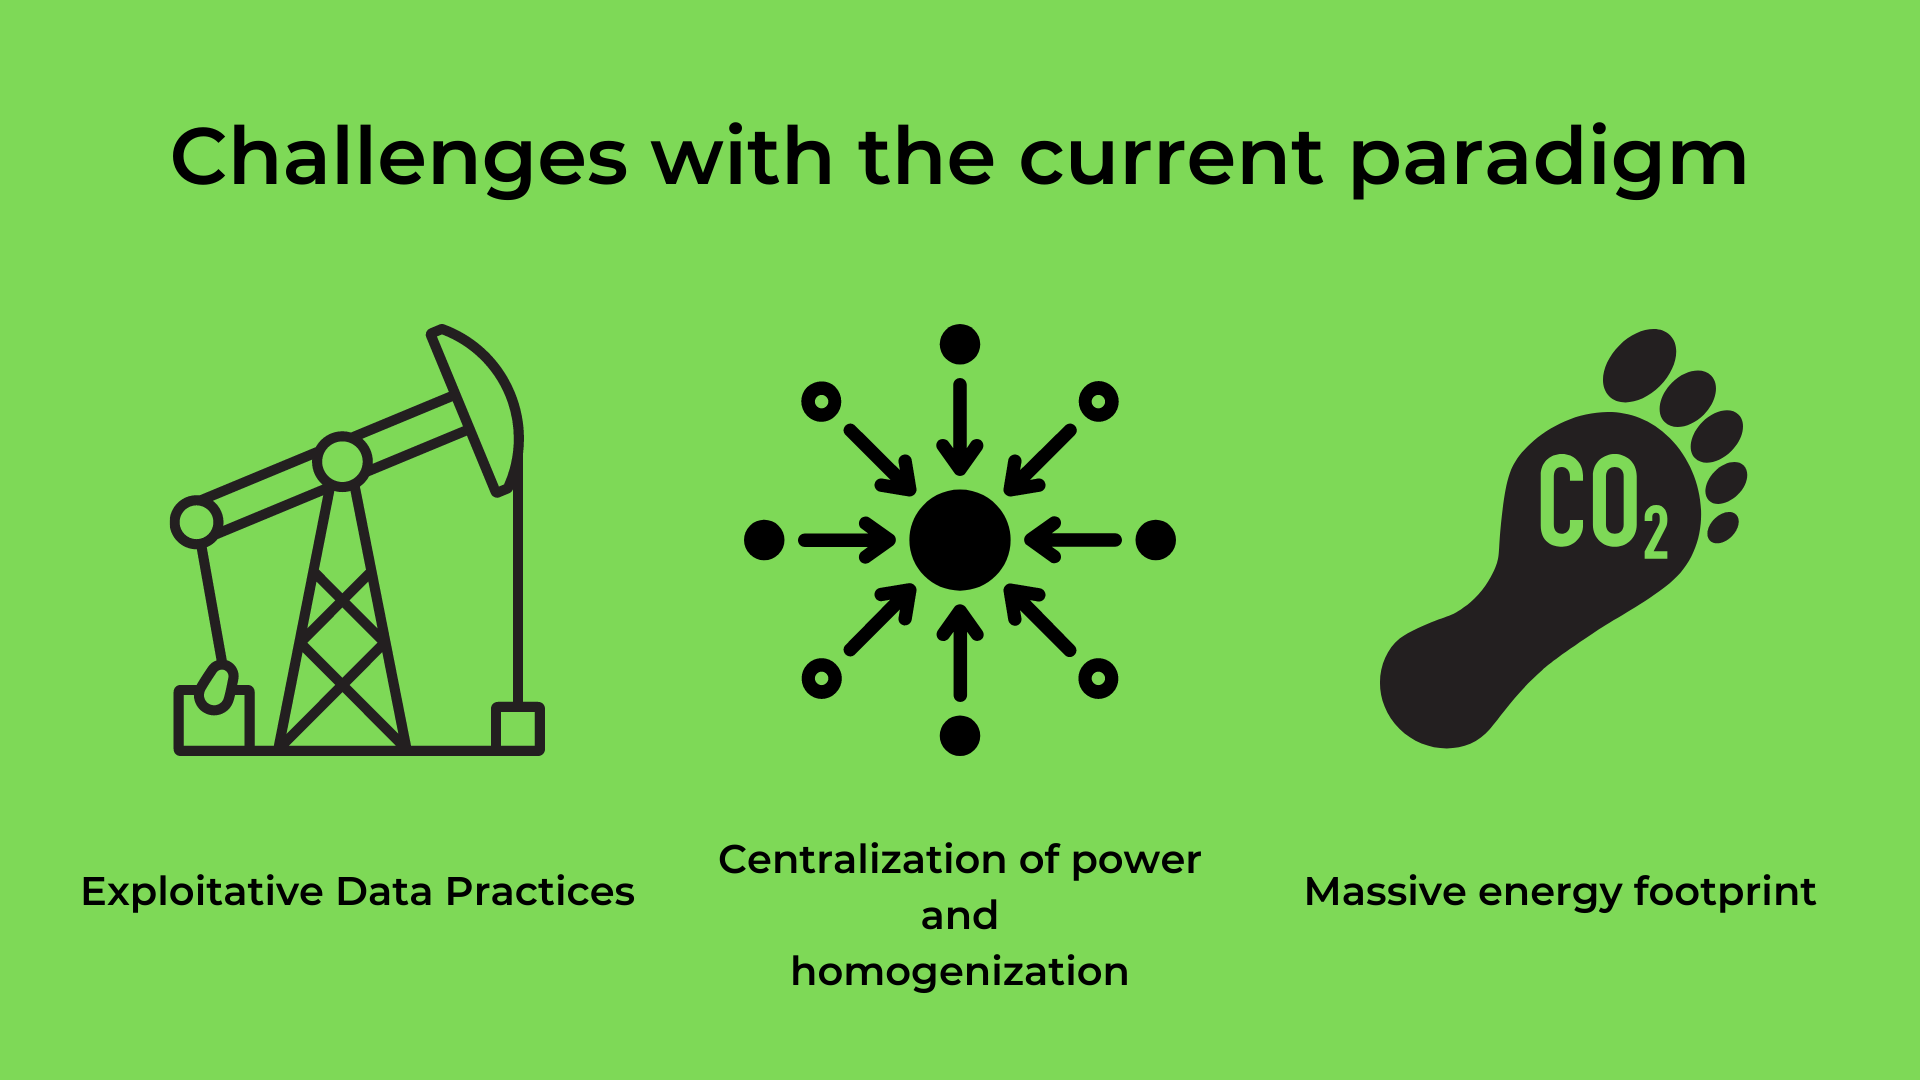 Challenges with the current paradigm